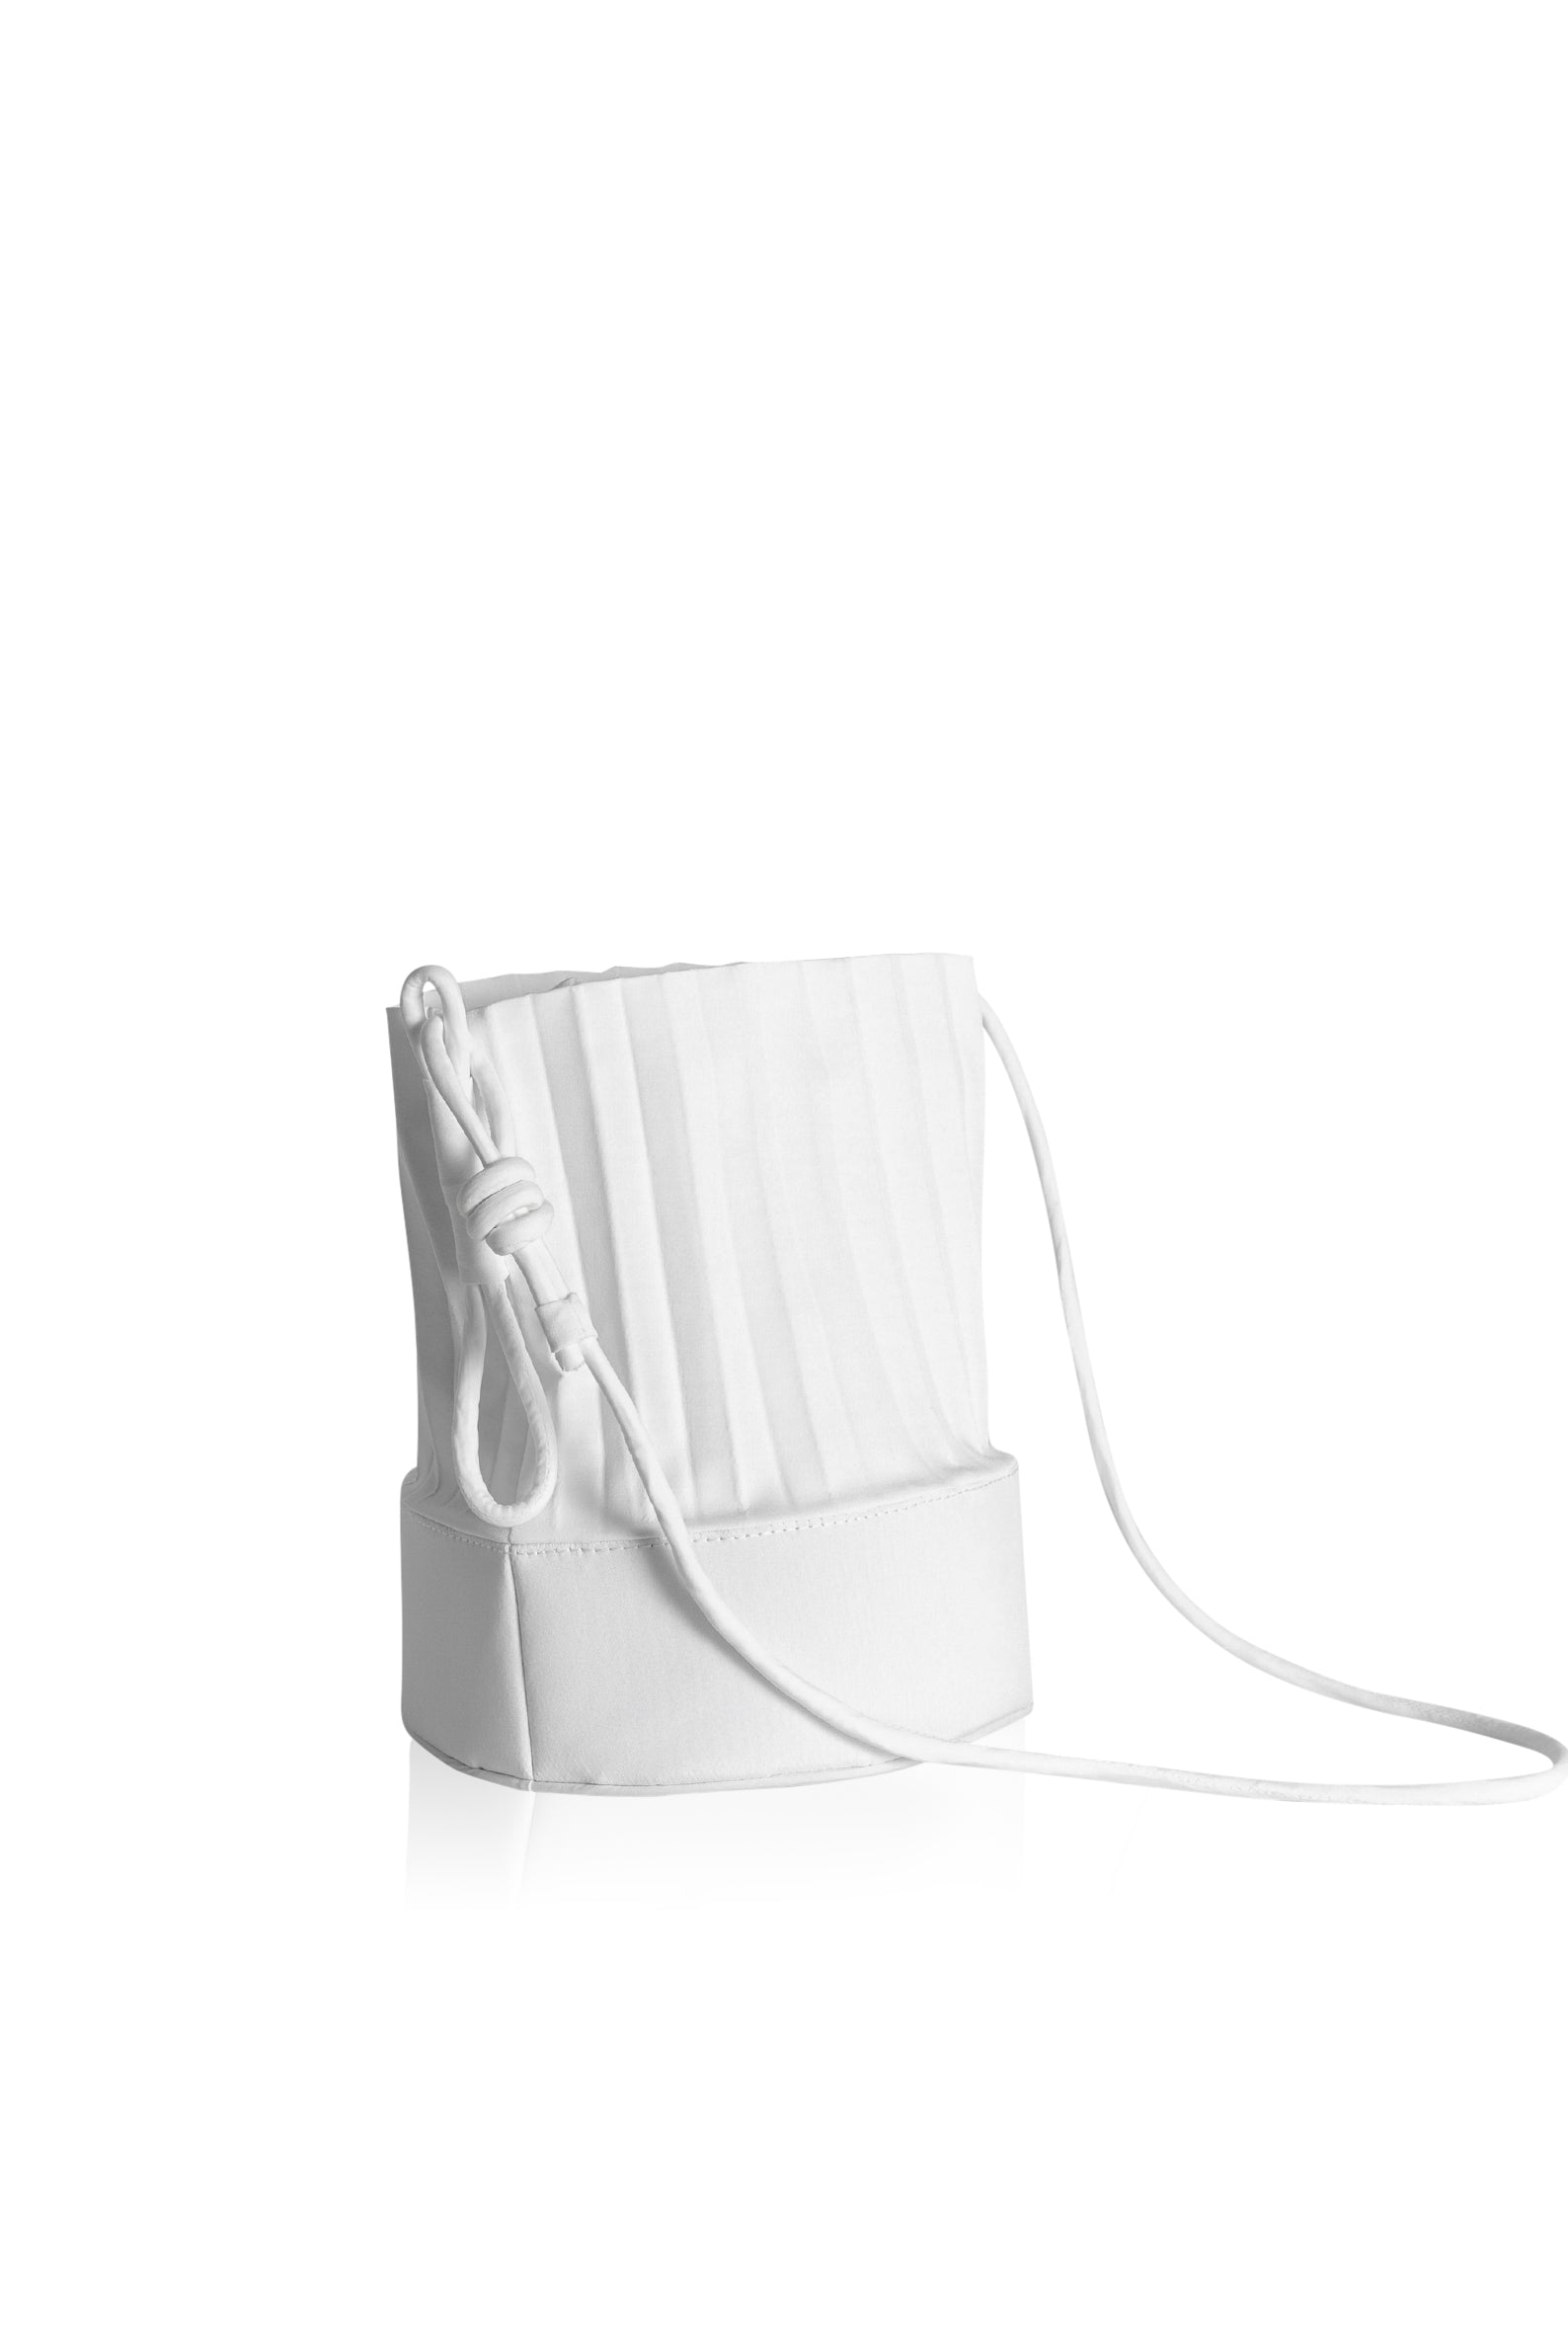 aPail | Bucket bag in White